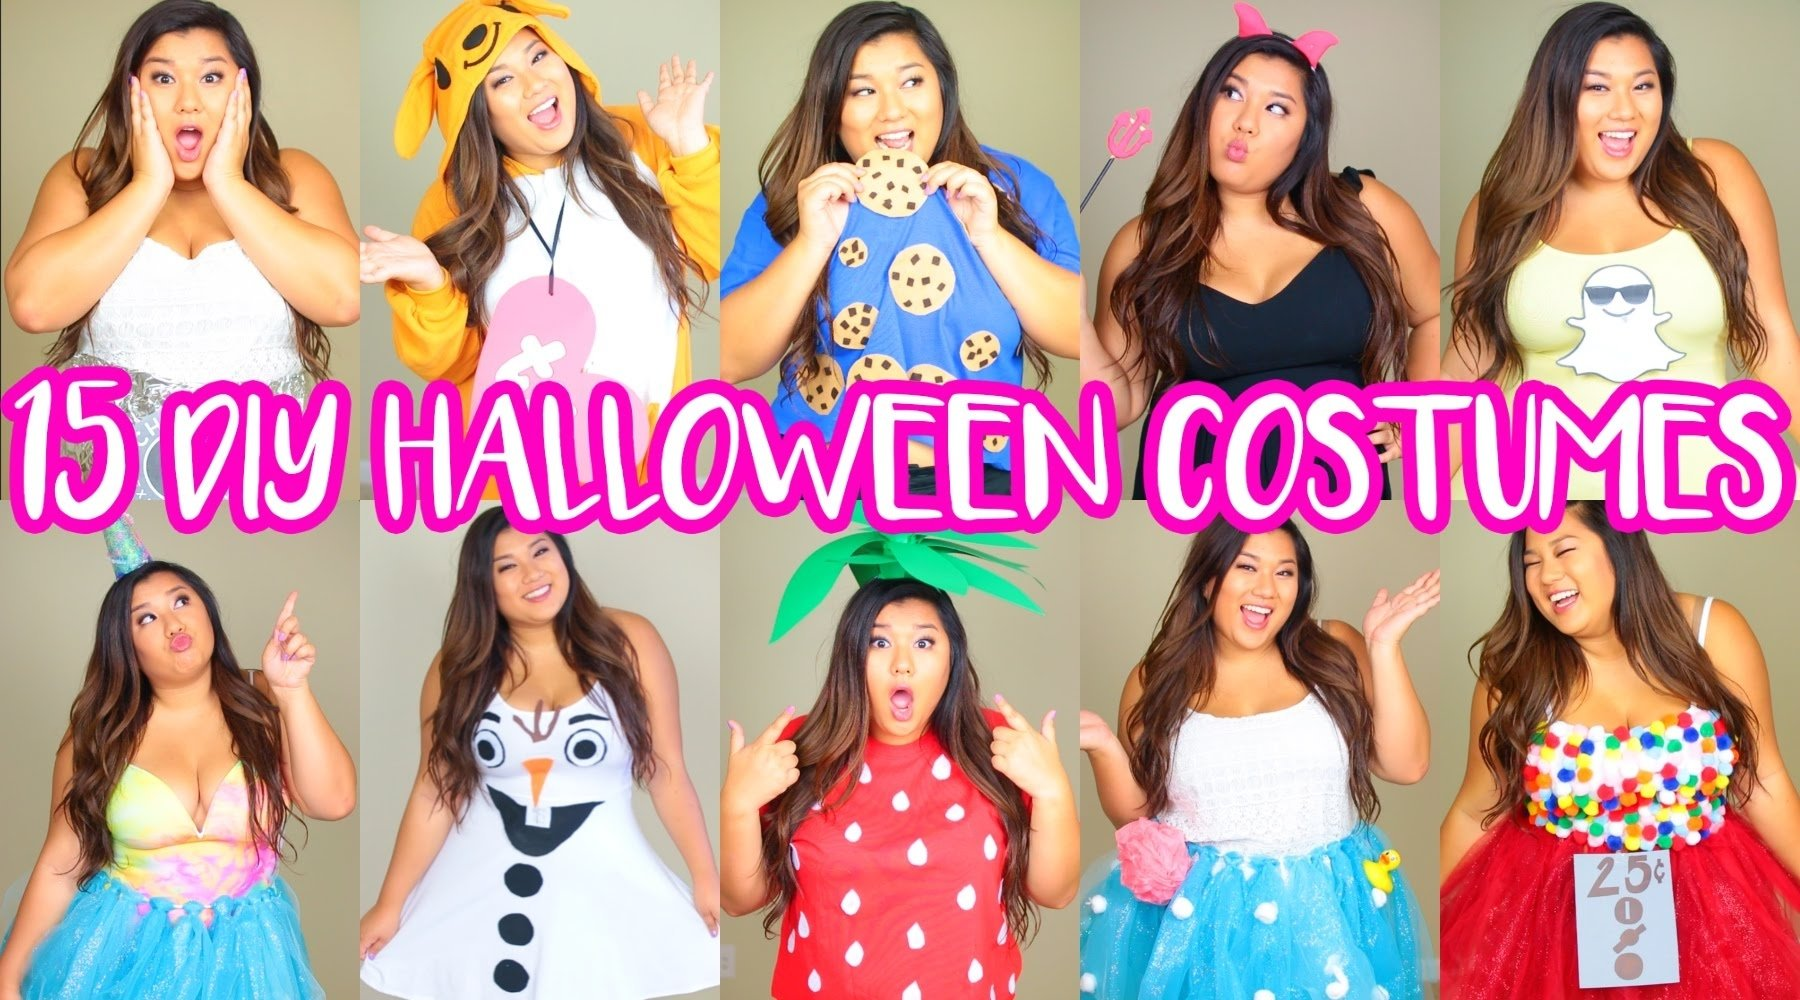 10 Pretty Unique Female Halloween Costume Ideas 15 diy halloween costumes last minute cute easy youtube 6